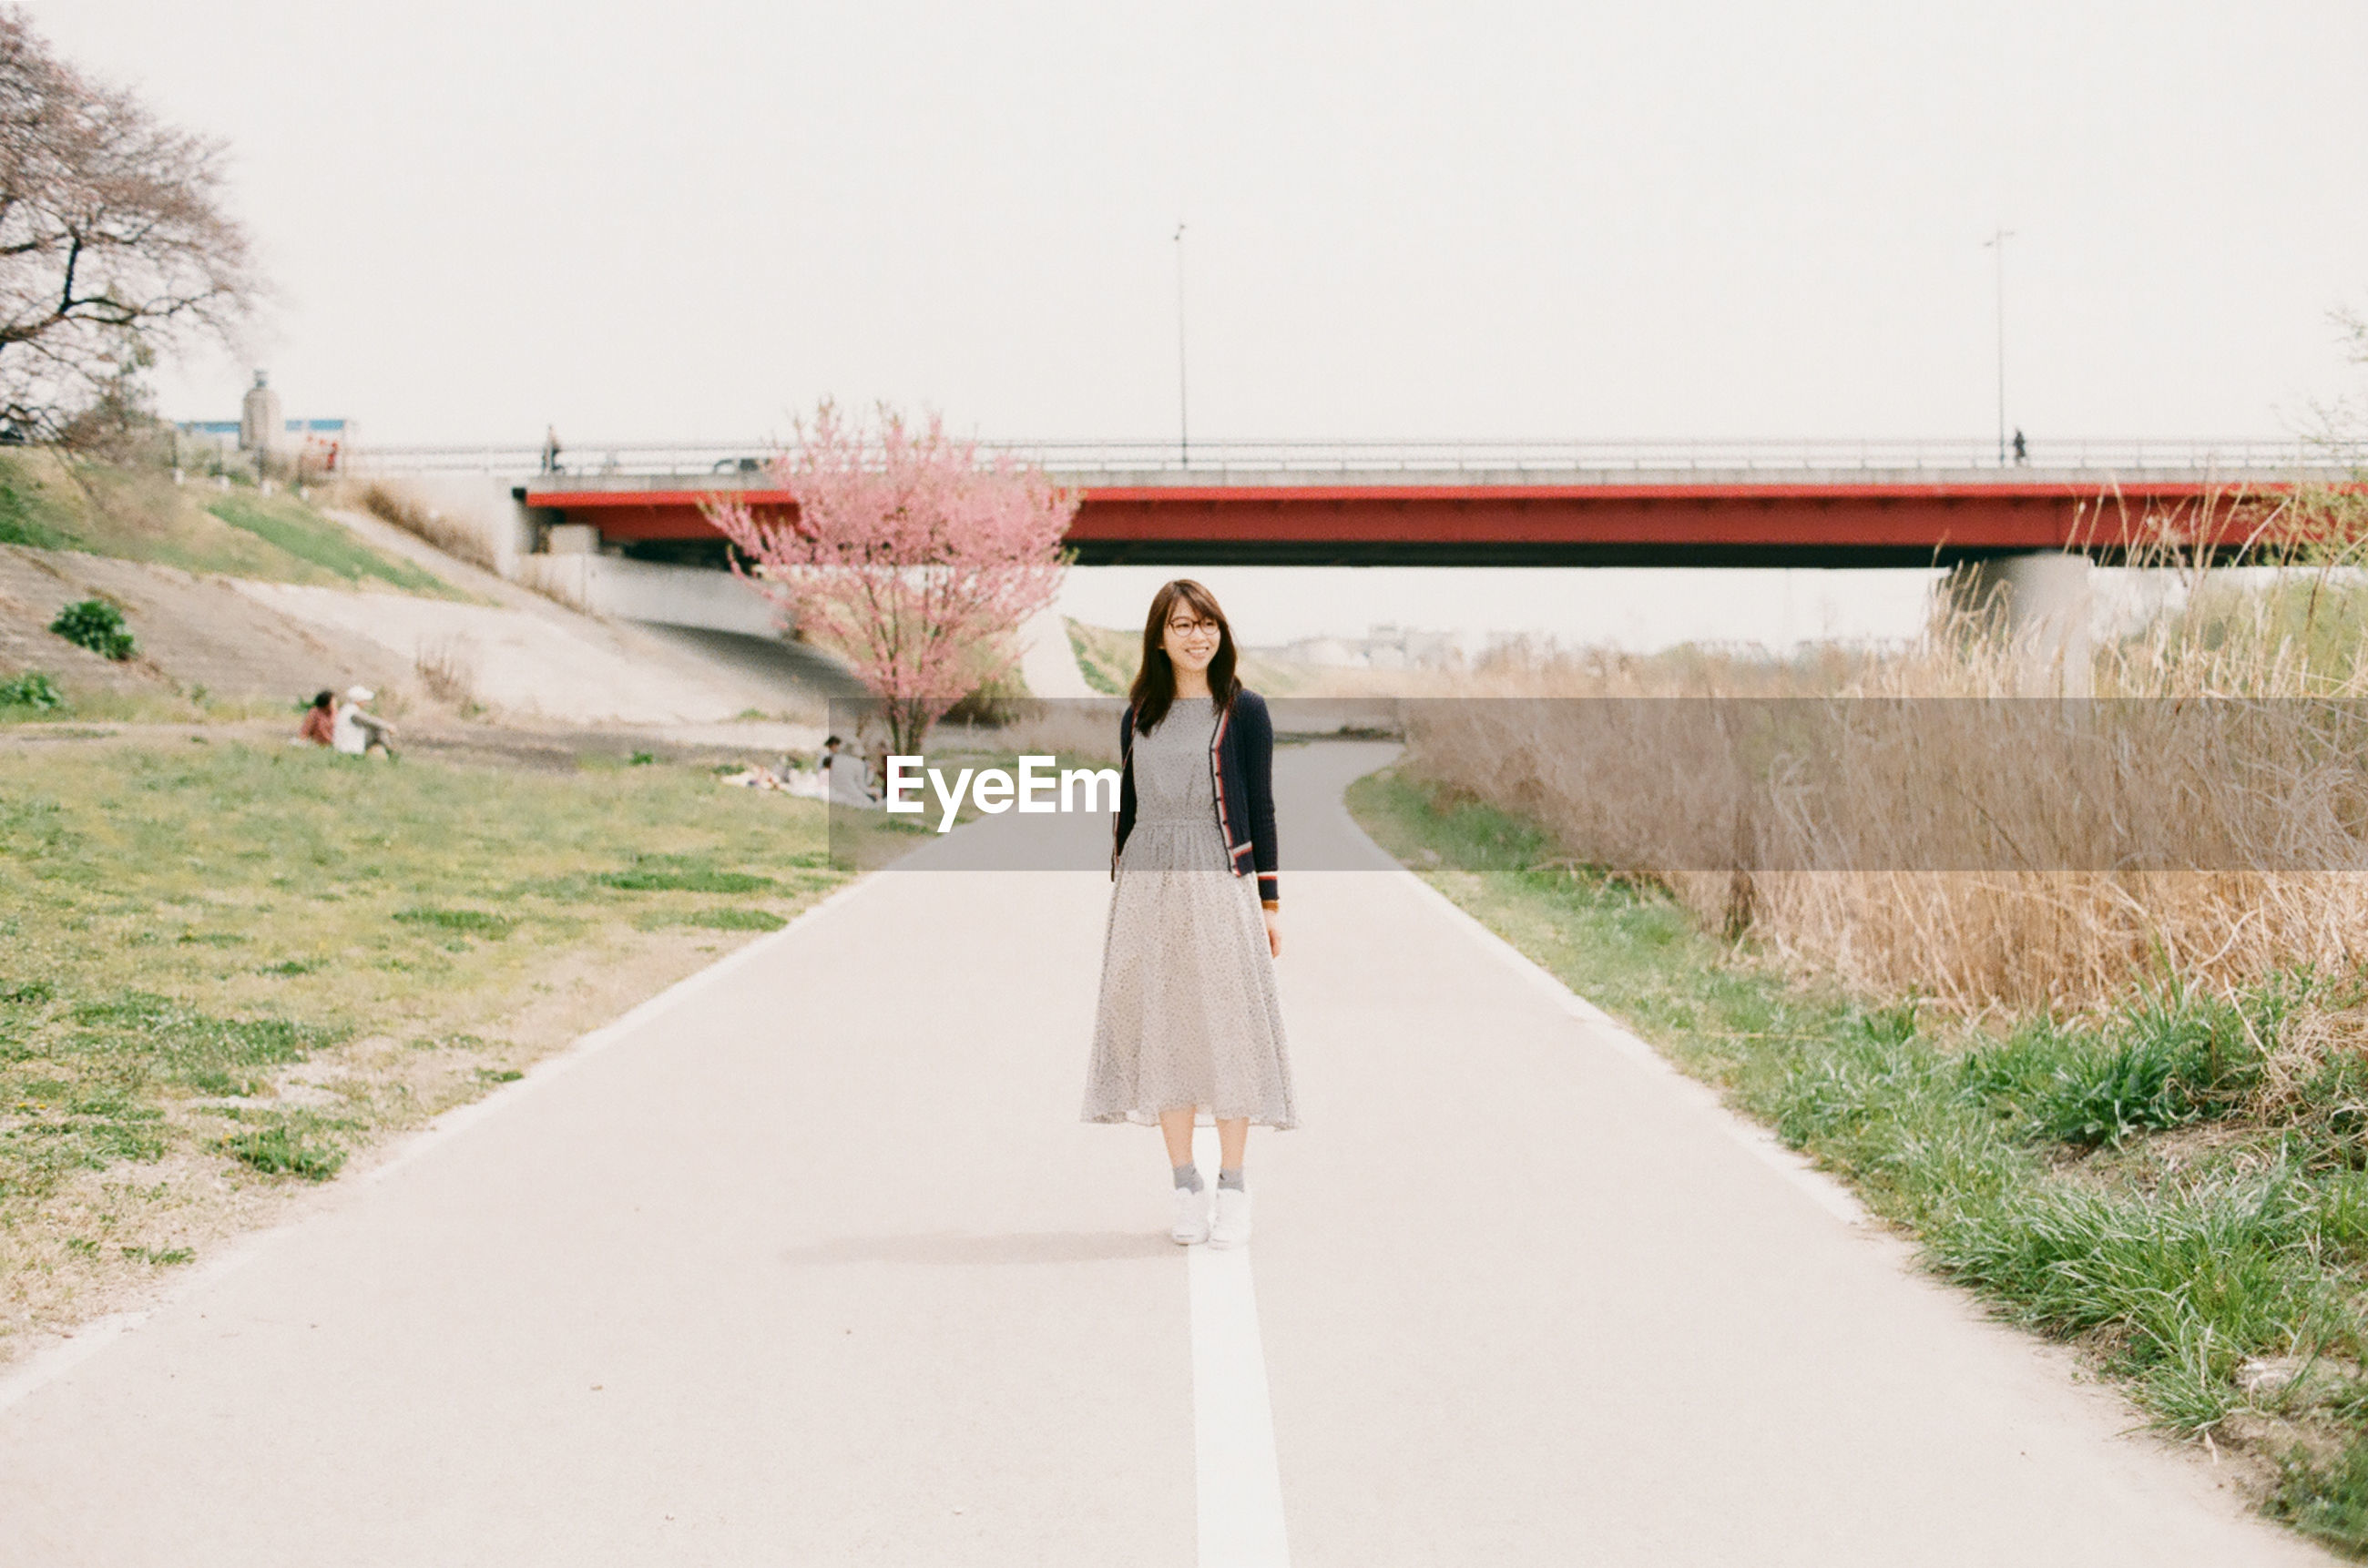 Full length of woman standing on street by bridge against clear sky